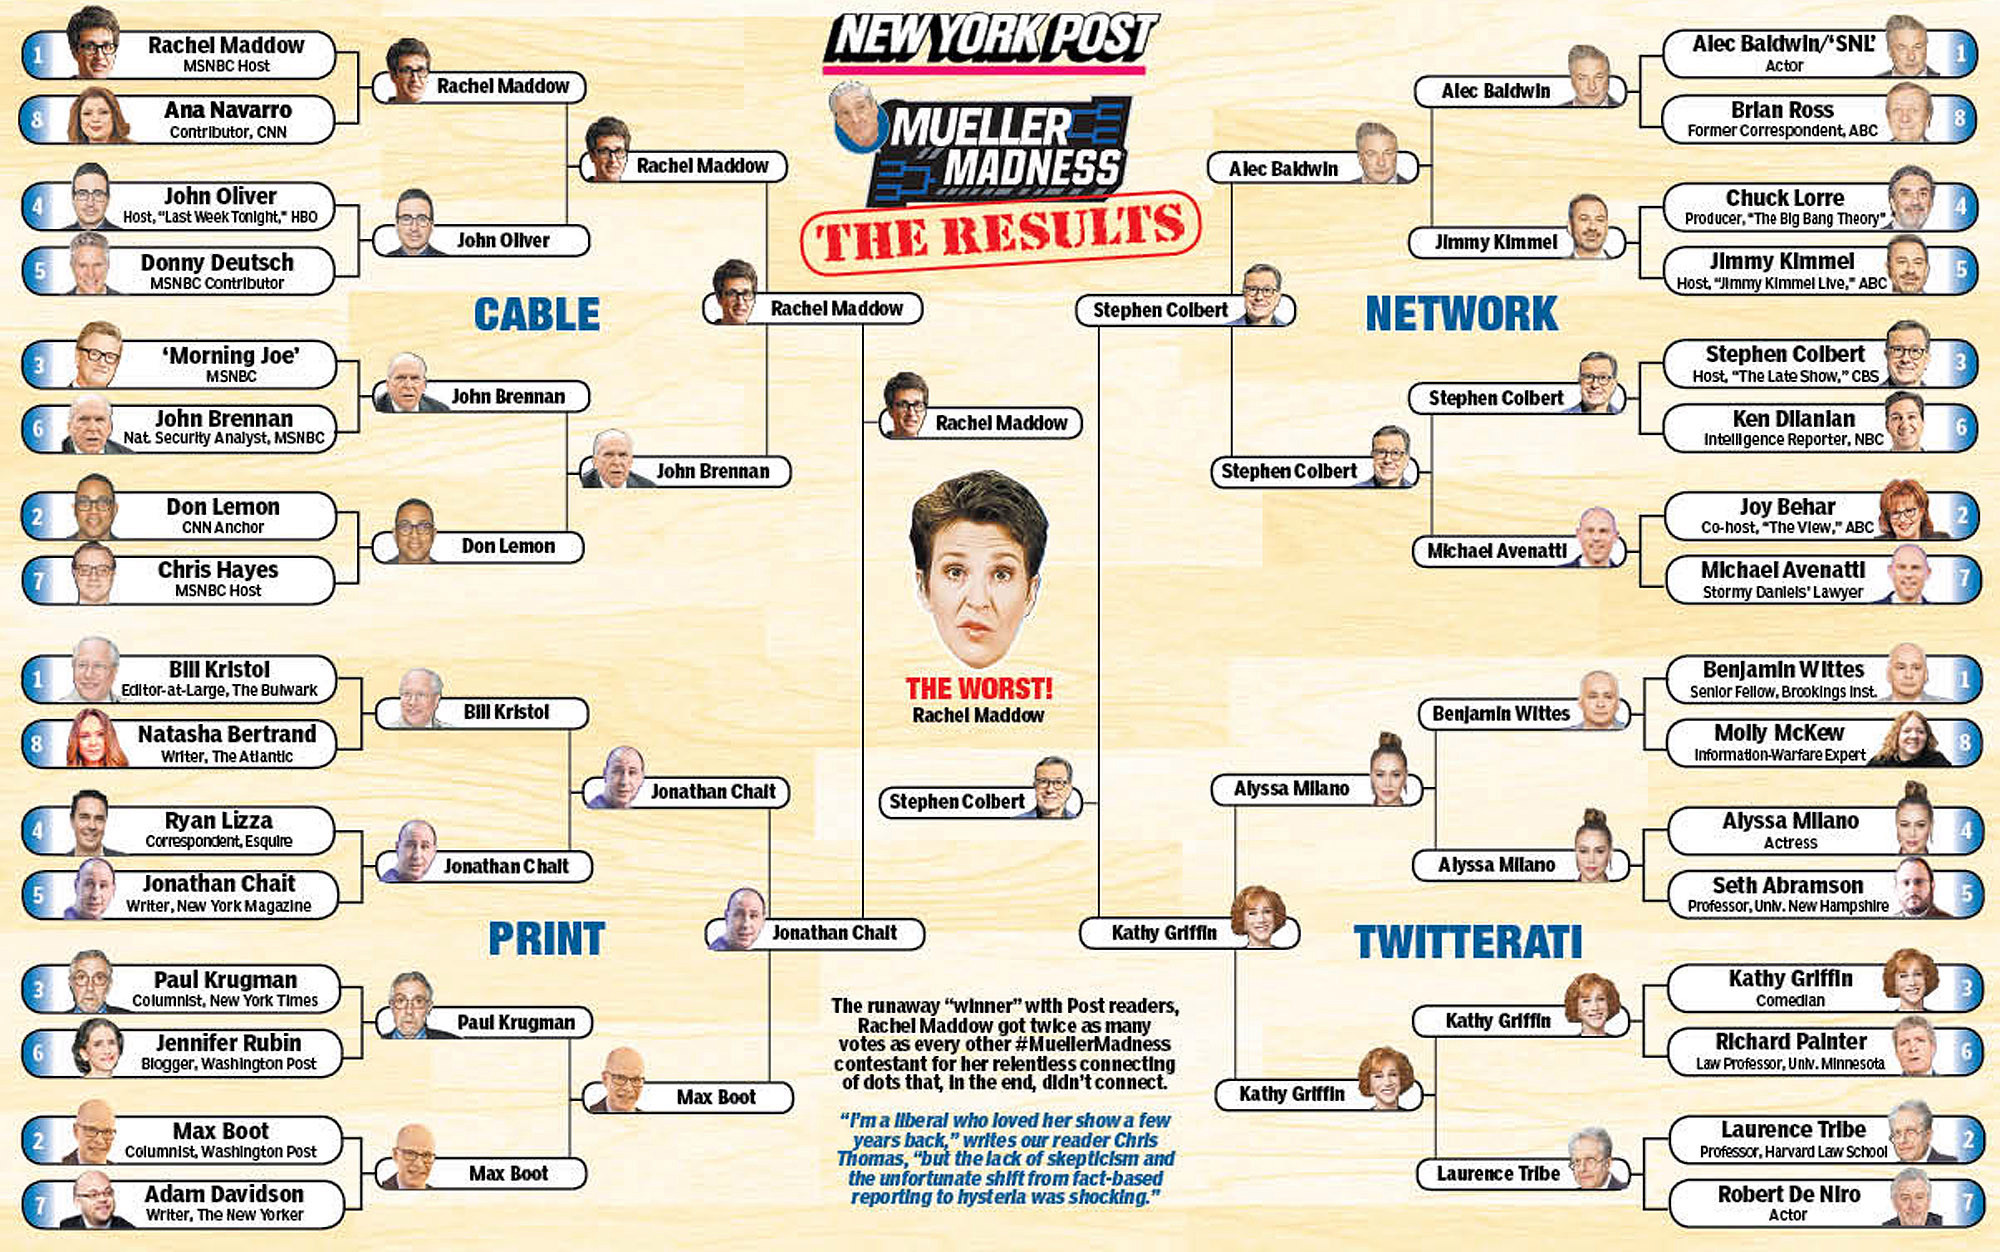 And the winner of The Post's Mueller Madness bracket is …